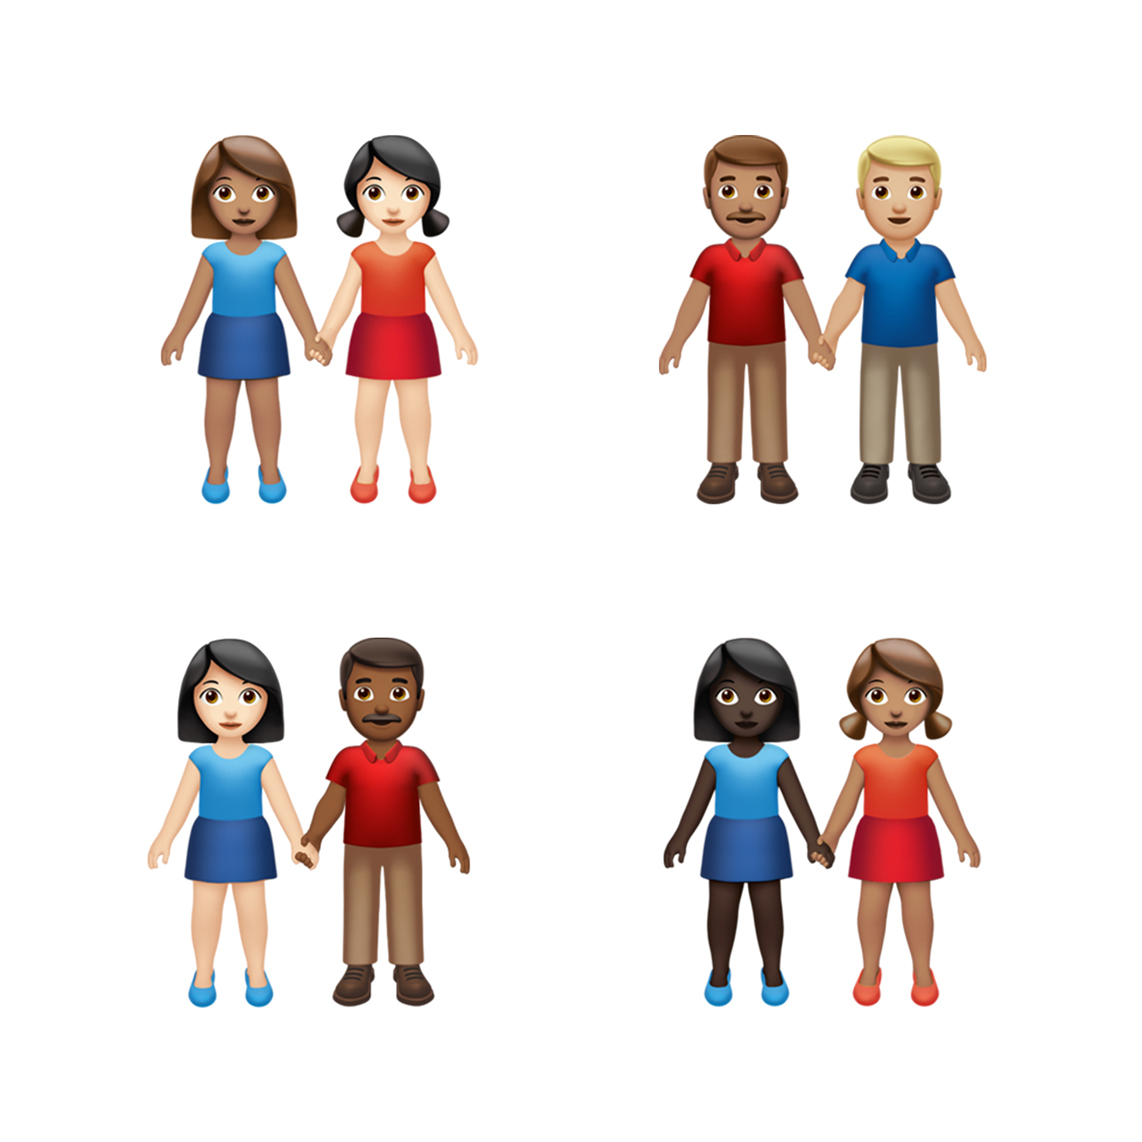 The image shows the upcoming IOS 13.0 update that will includes emojis where users can choose couples with various skin tones and genders to hold hands.